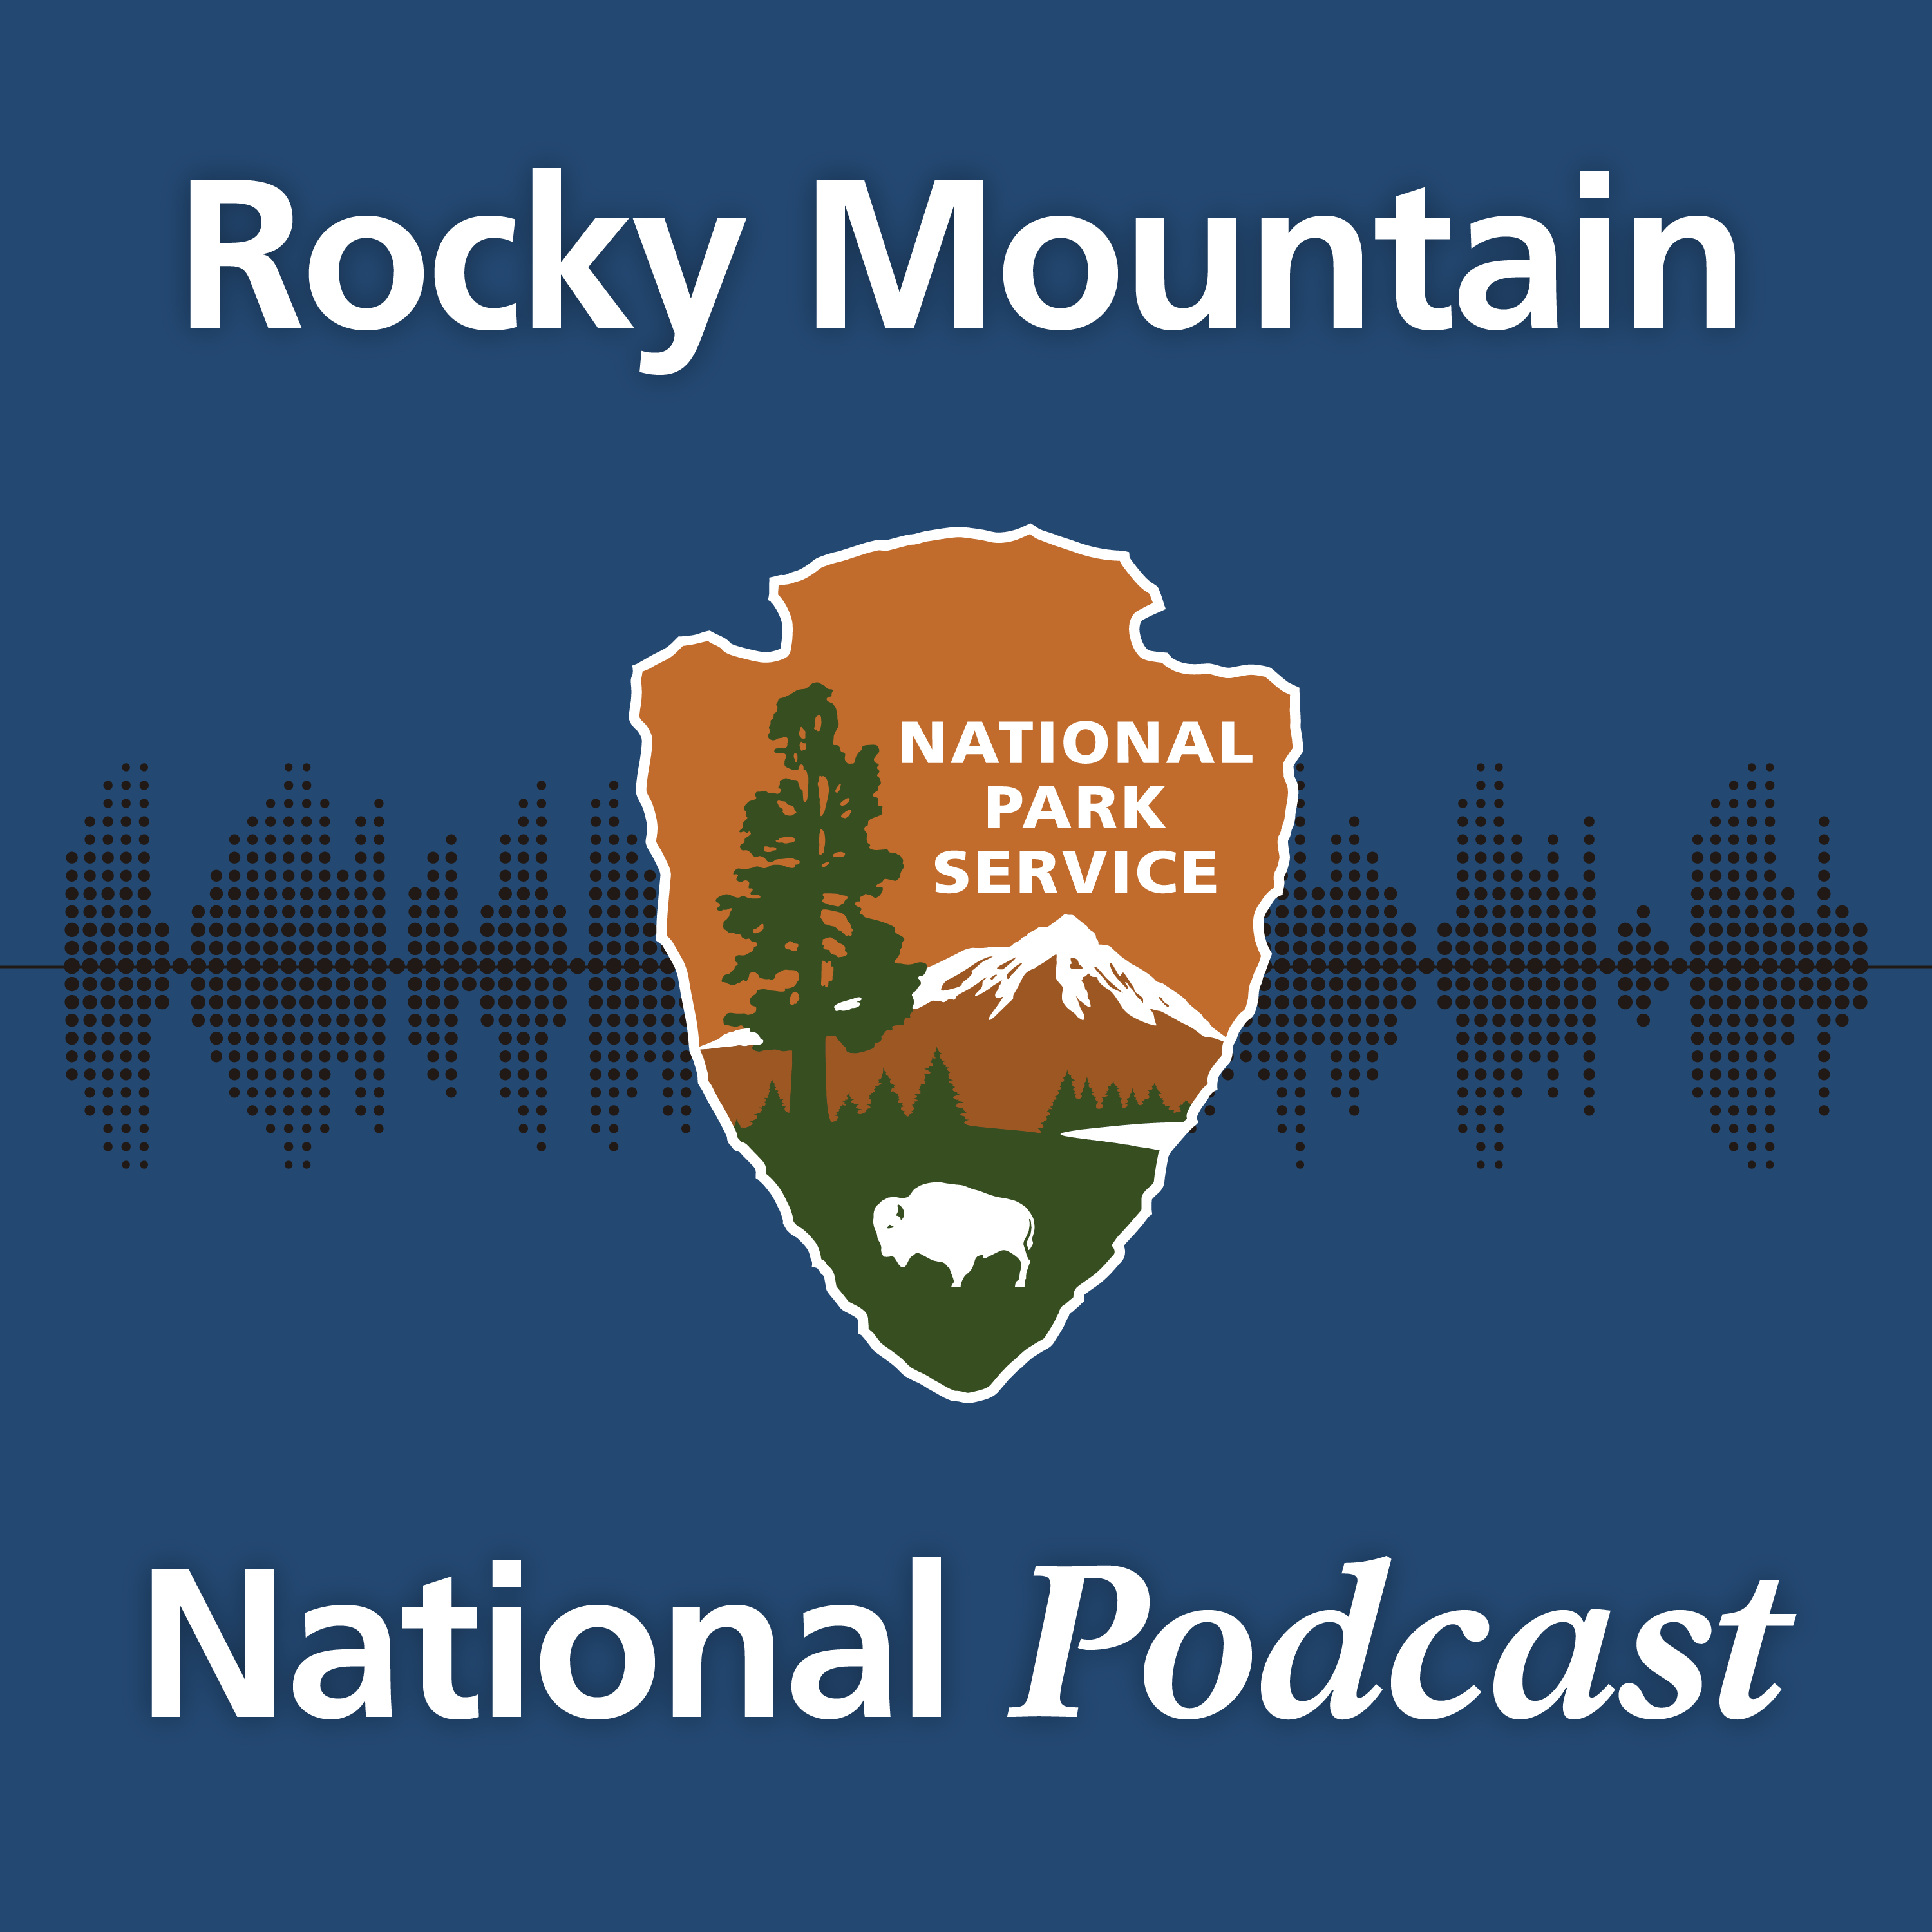 Rocky Mountain National Podcast On Apple Podcasts